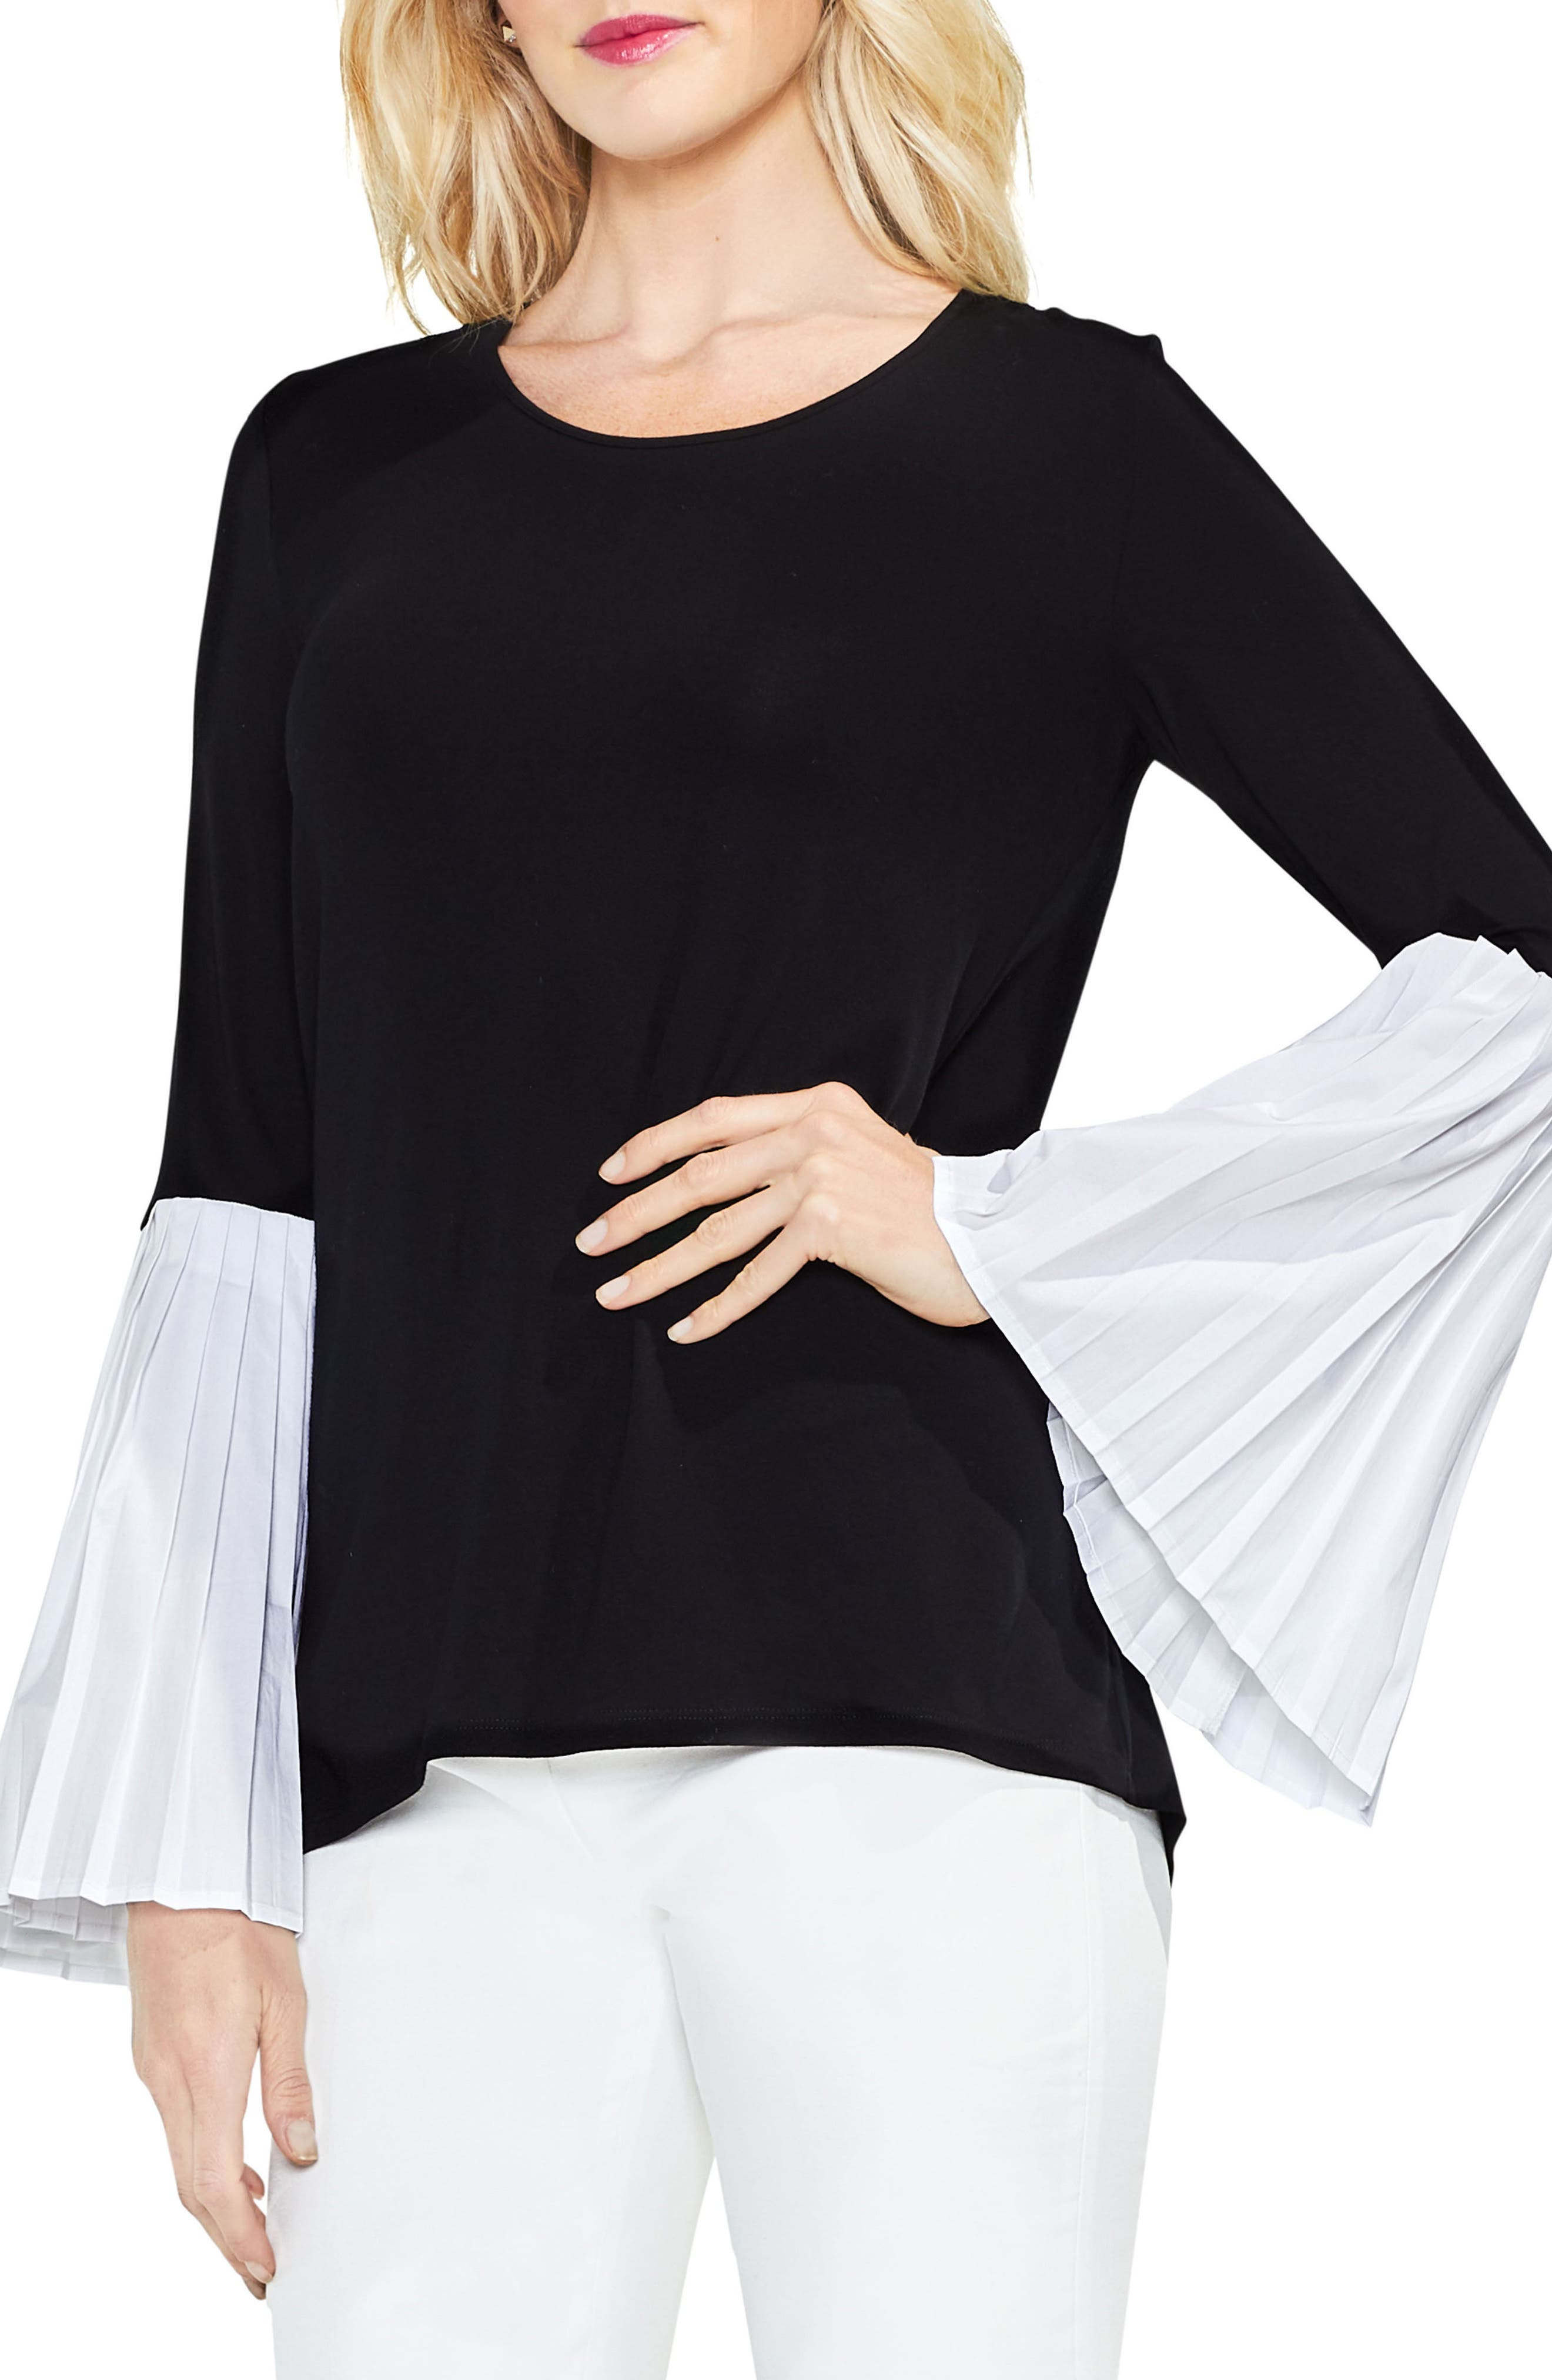 Alternate Image 1 Selected - Vince Camuto Pleated Bell Sleeve Mix Media Top